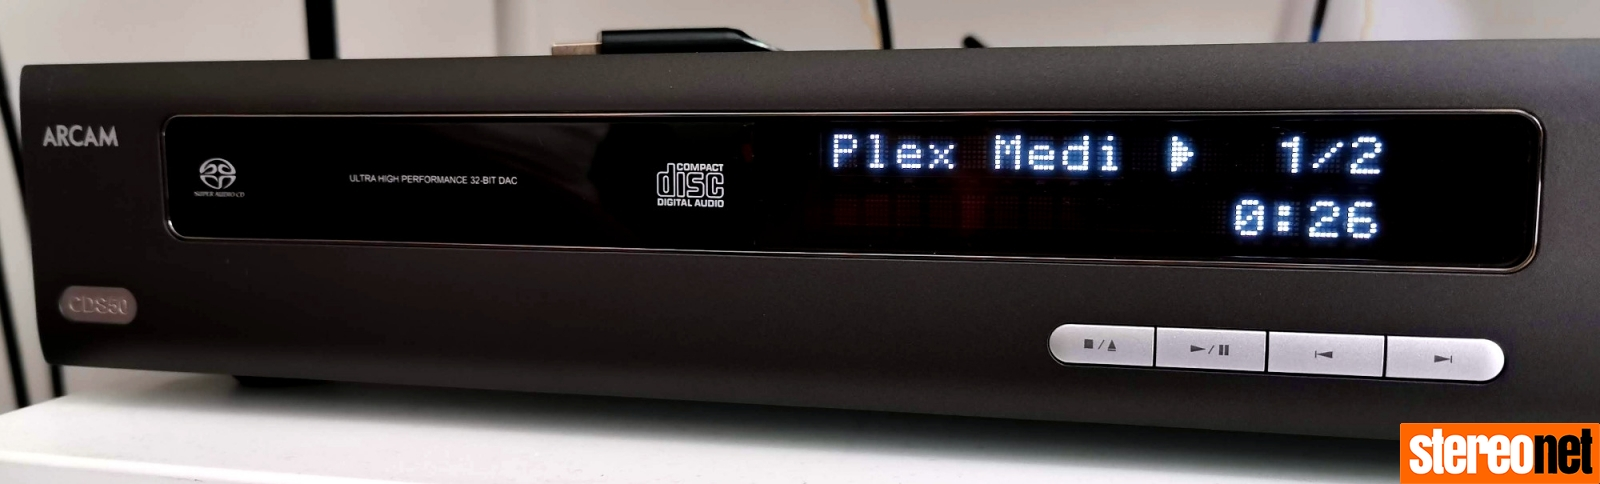 Arcam CDS50 Review